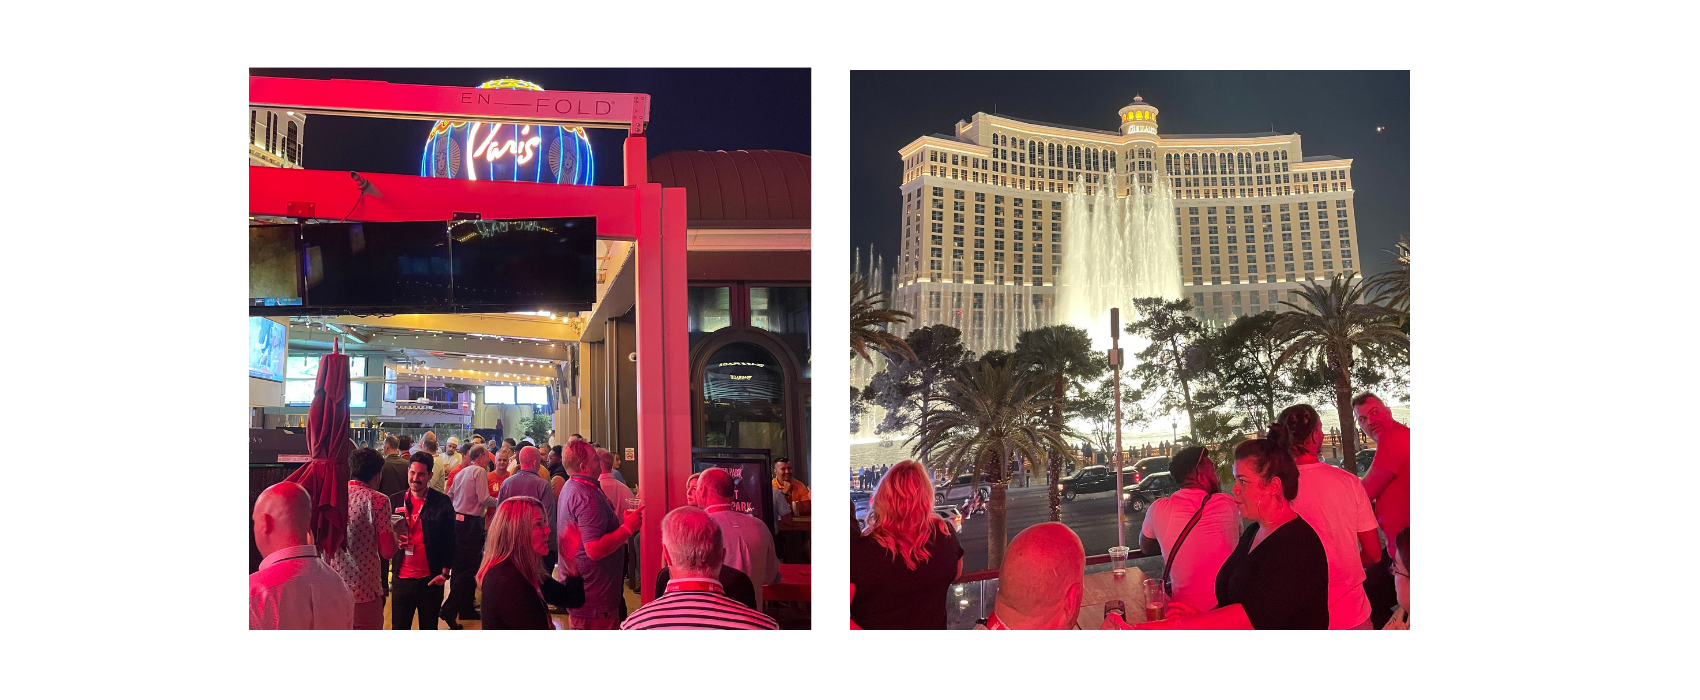 """Two images showing scenes from the Rosie rooftop """"Hoppy Hour"""" at Beer Park in Las Vegas across from the Bellagio Fountains"""